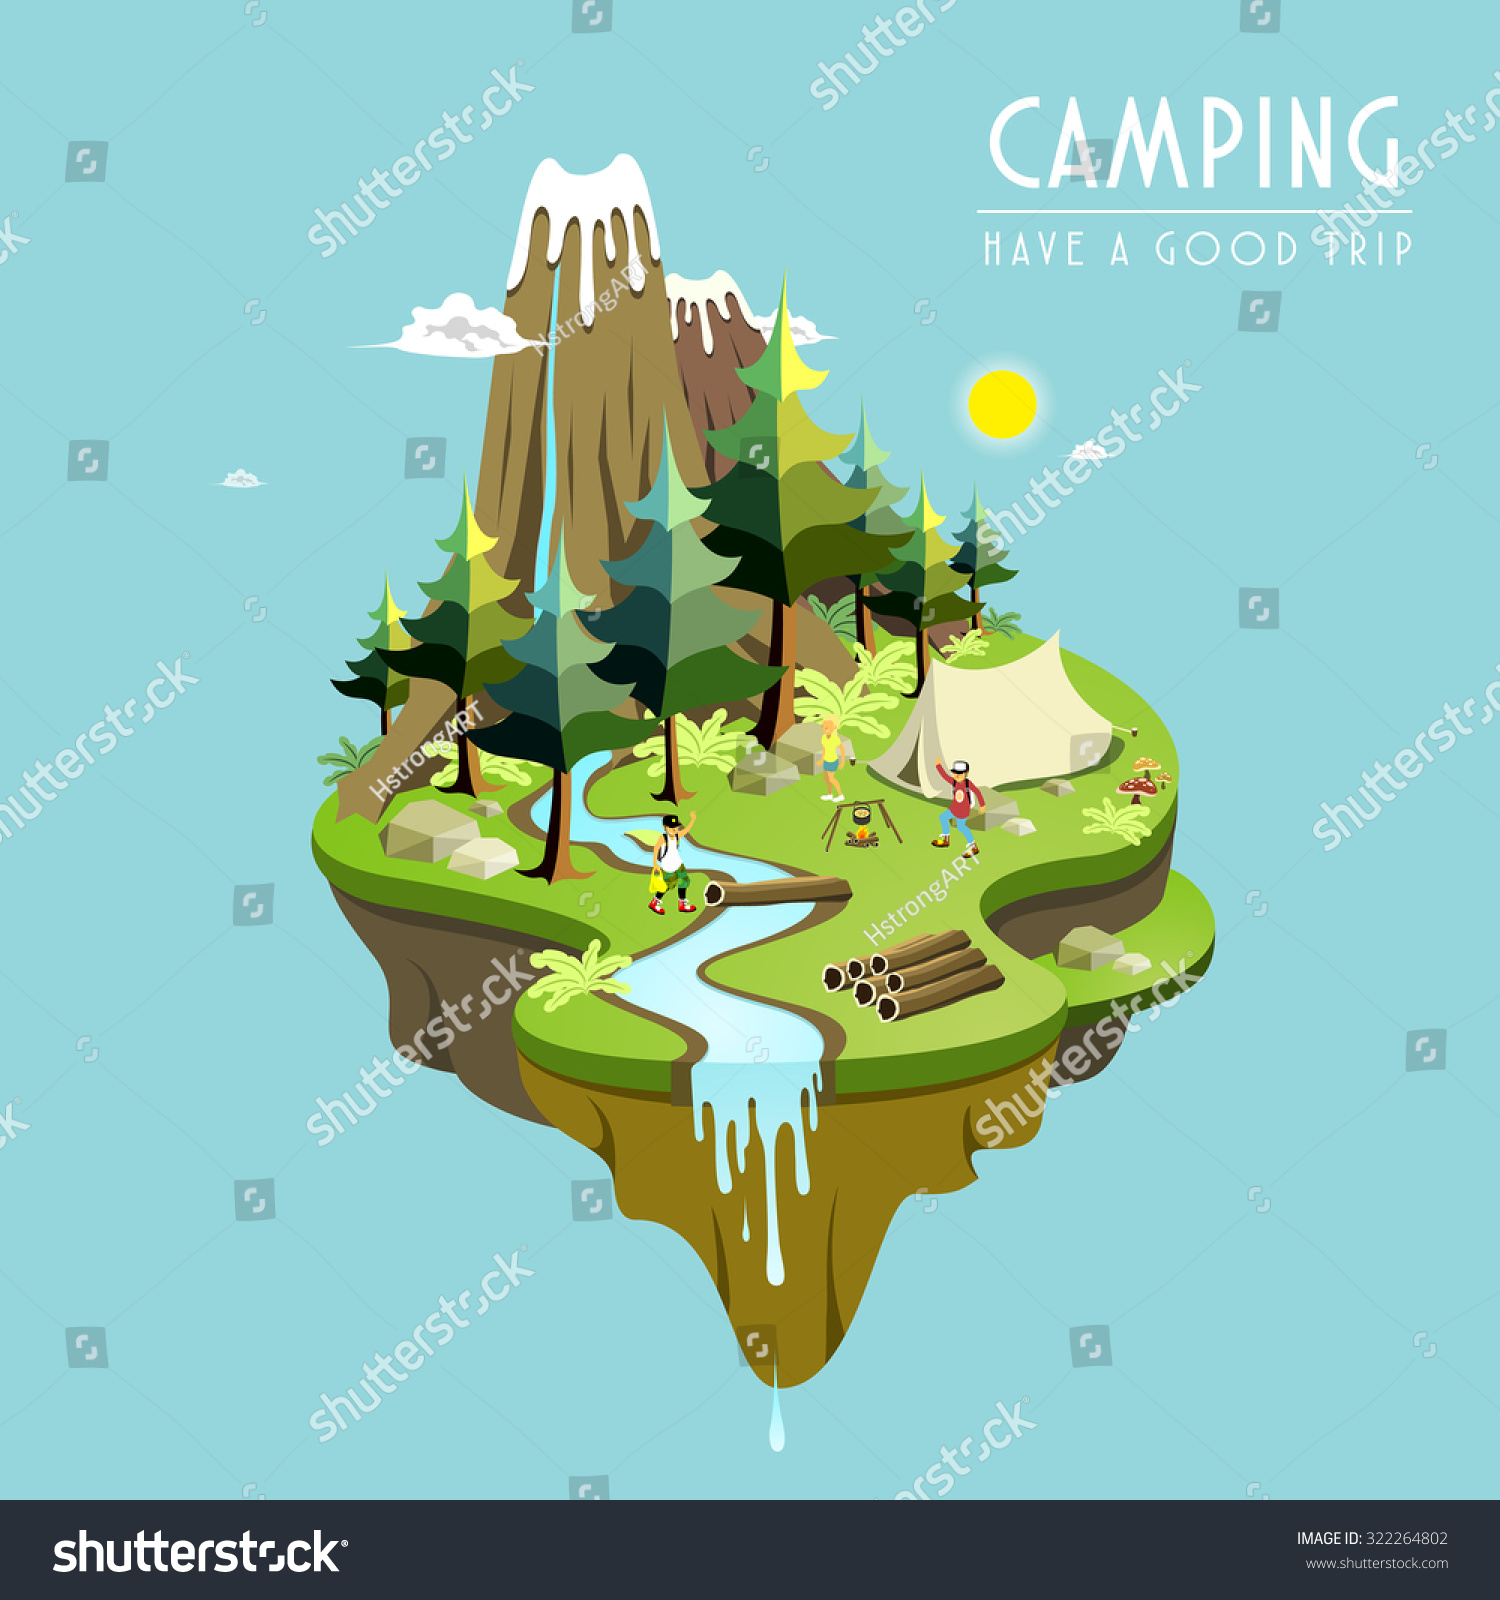 Camping concept 3d isometric flat design stock vector for 3d flat design online